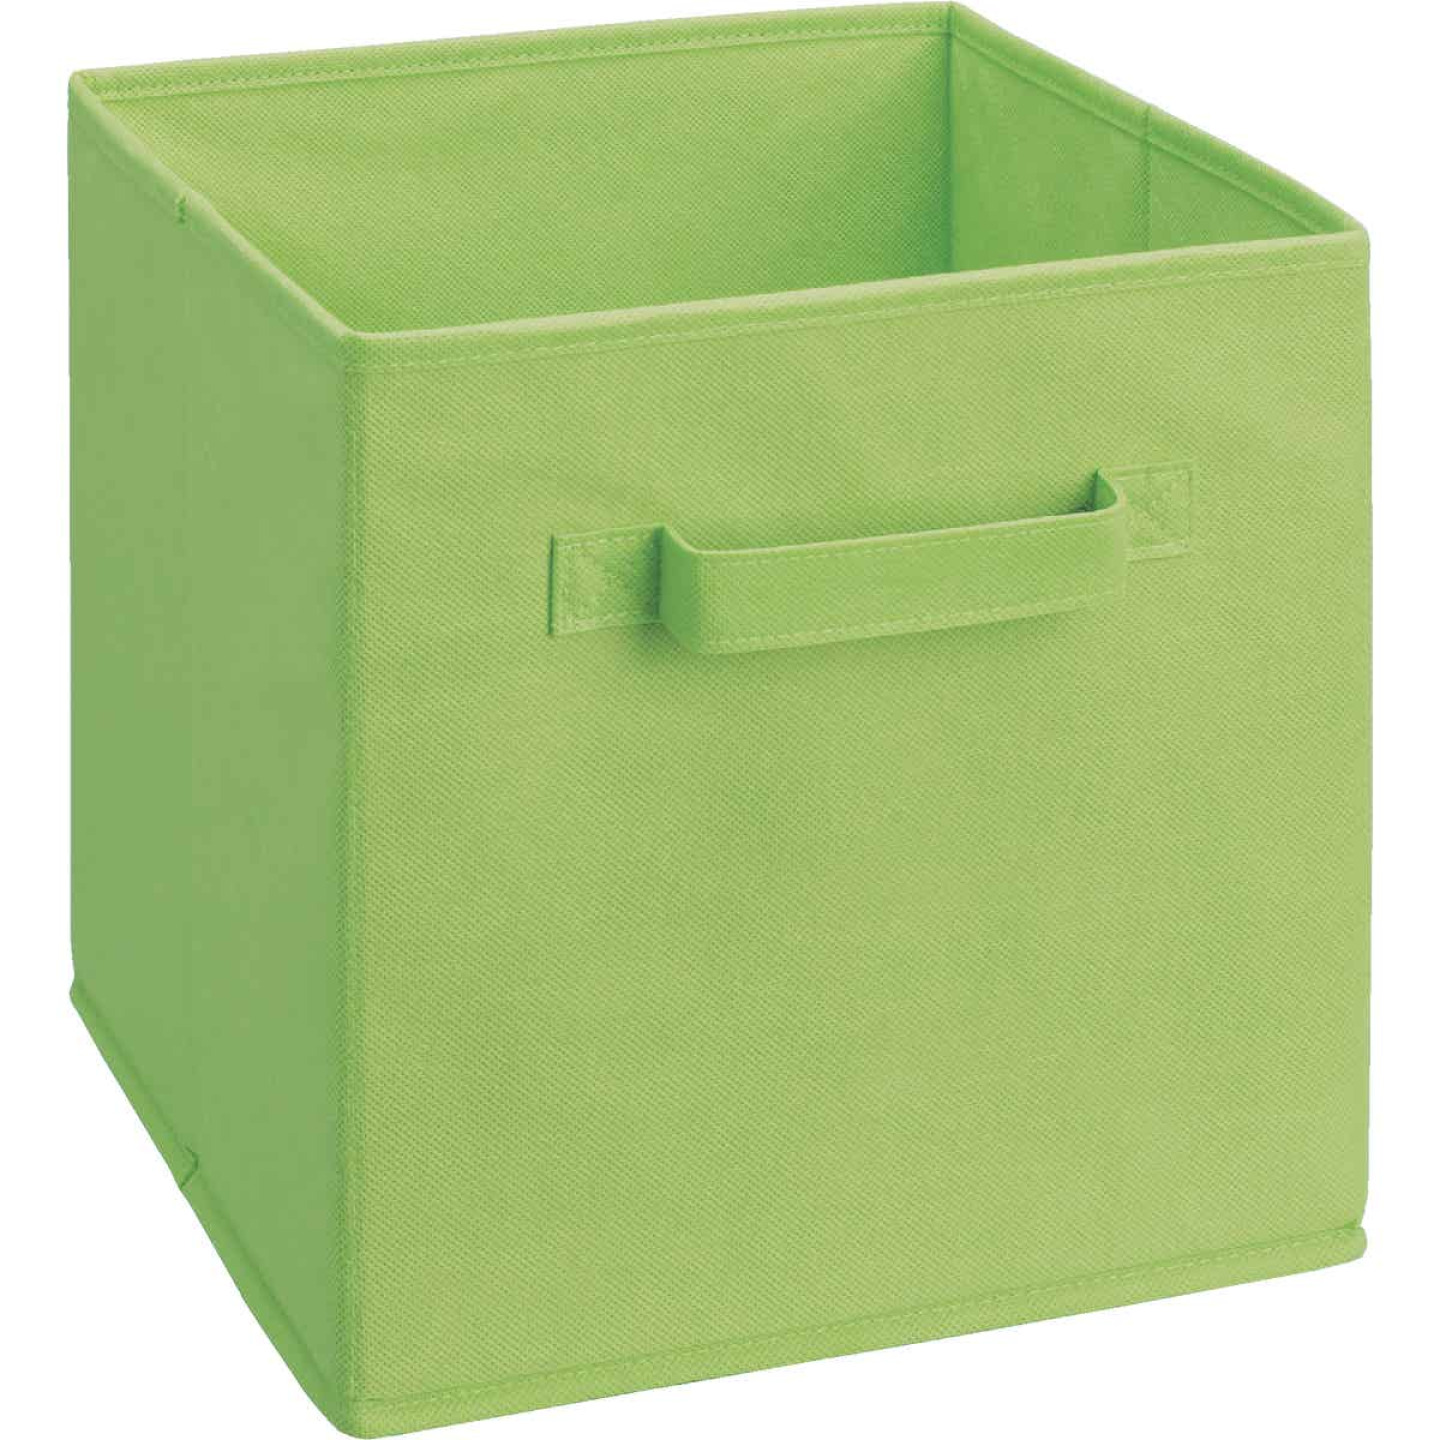 ClosetMaid Cubeicals 10.5 In. W. x 11 In. H. Lime Green Fabric Drawer Image 1